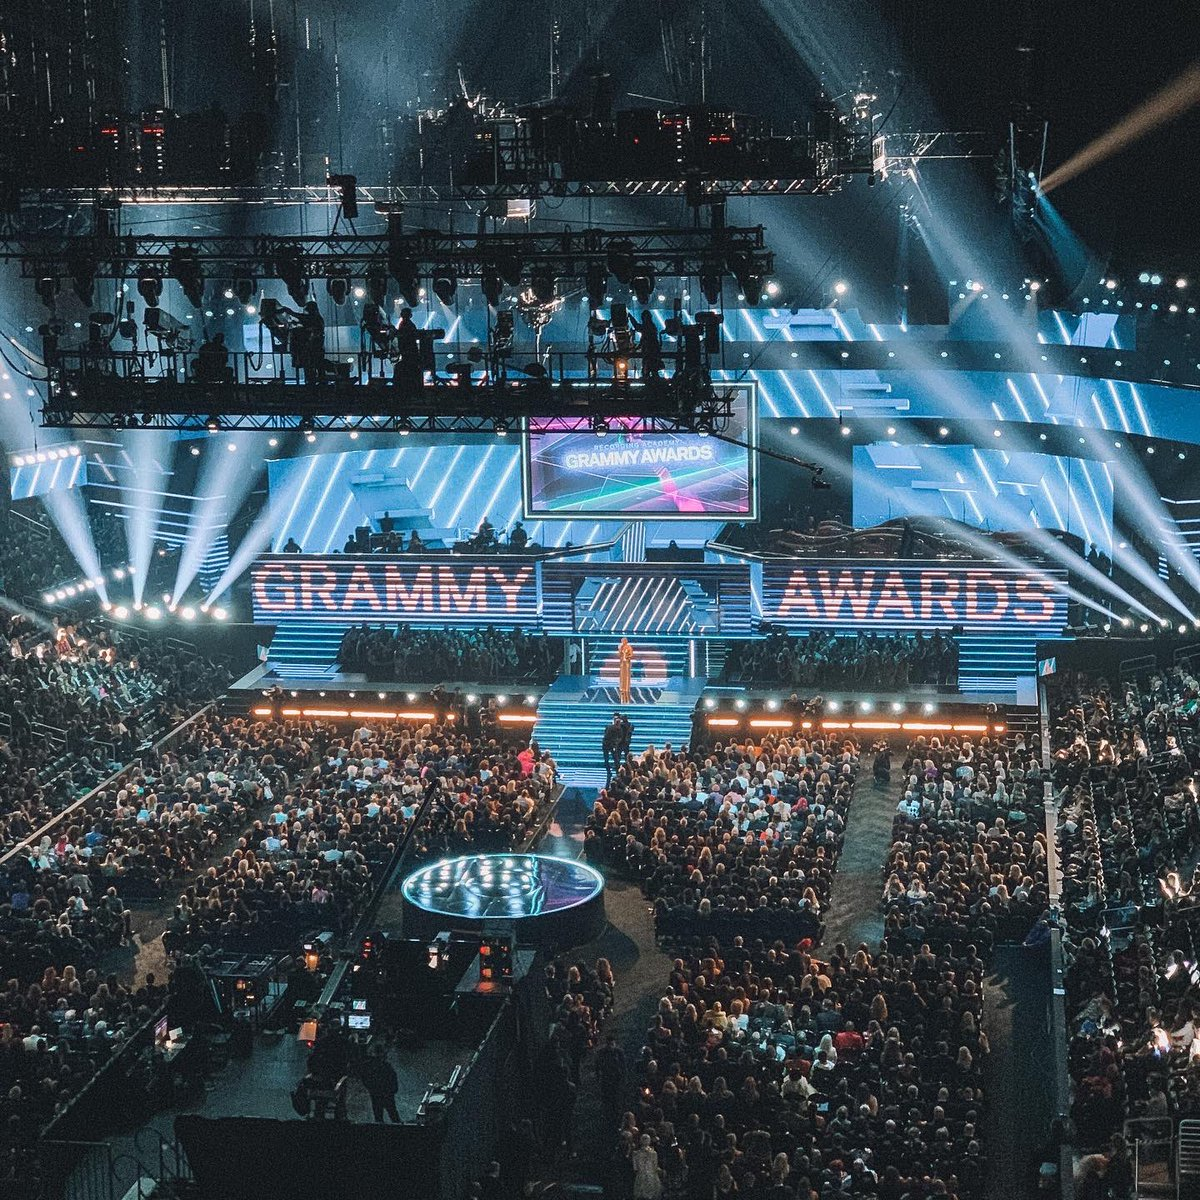 What a time to be in LA. It certainly was a mixed day emotionally with thousands of people flocking to Staples Centre to pay tribute to Kobe. Somehow I made it just in time to the Grammys, such a cool experience.